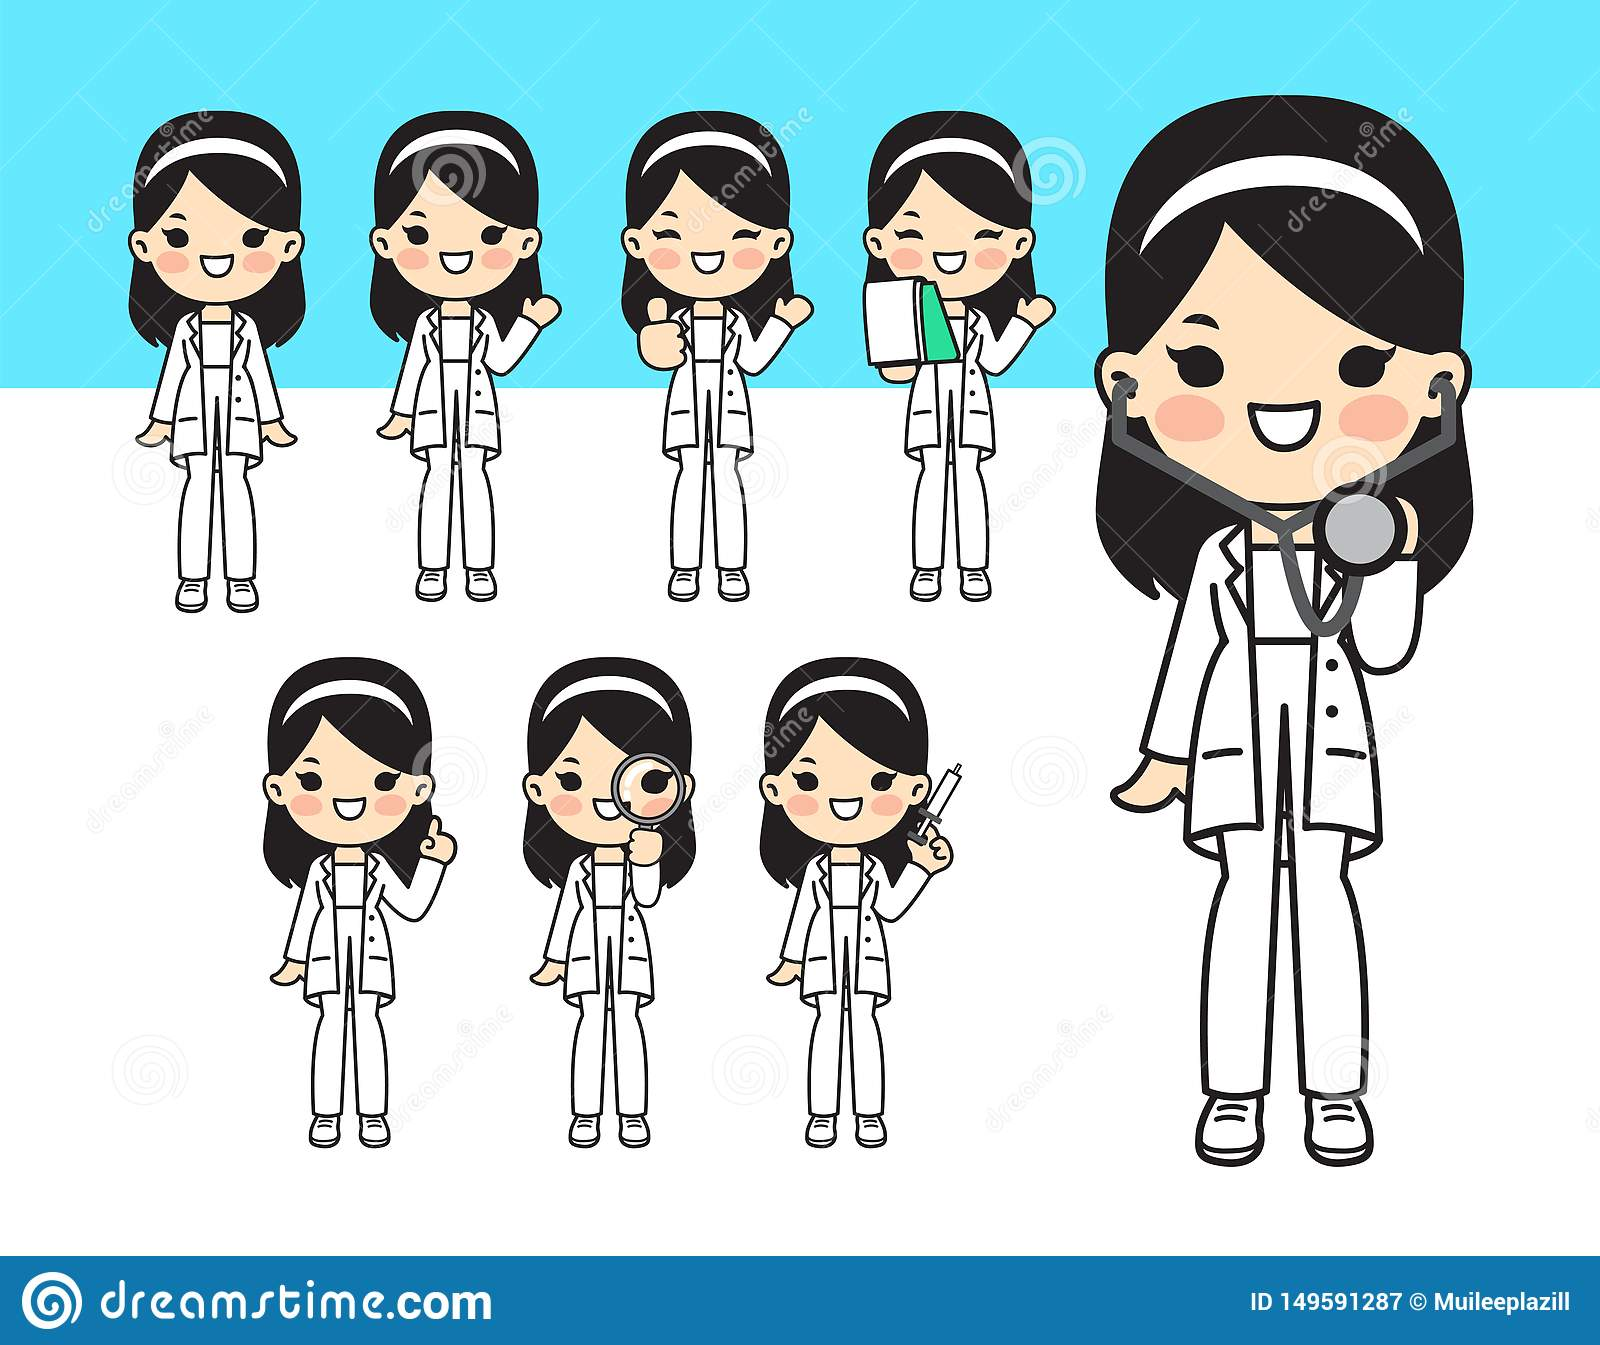 Illustration for doctor.Cute style